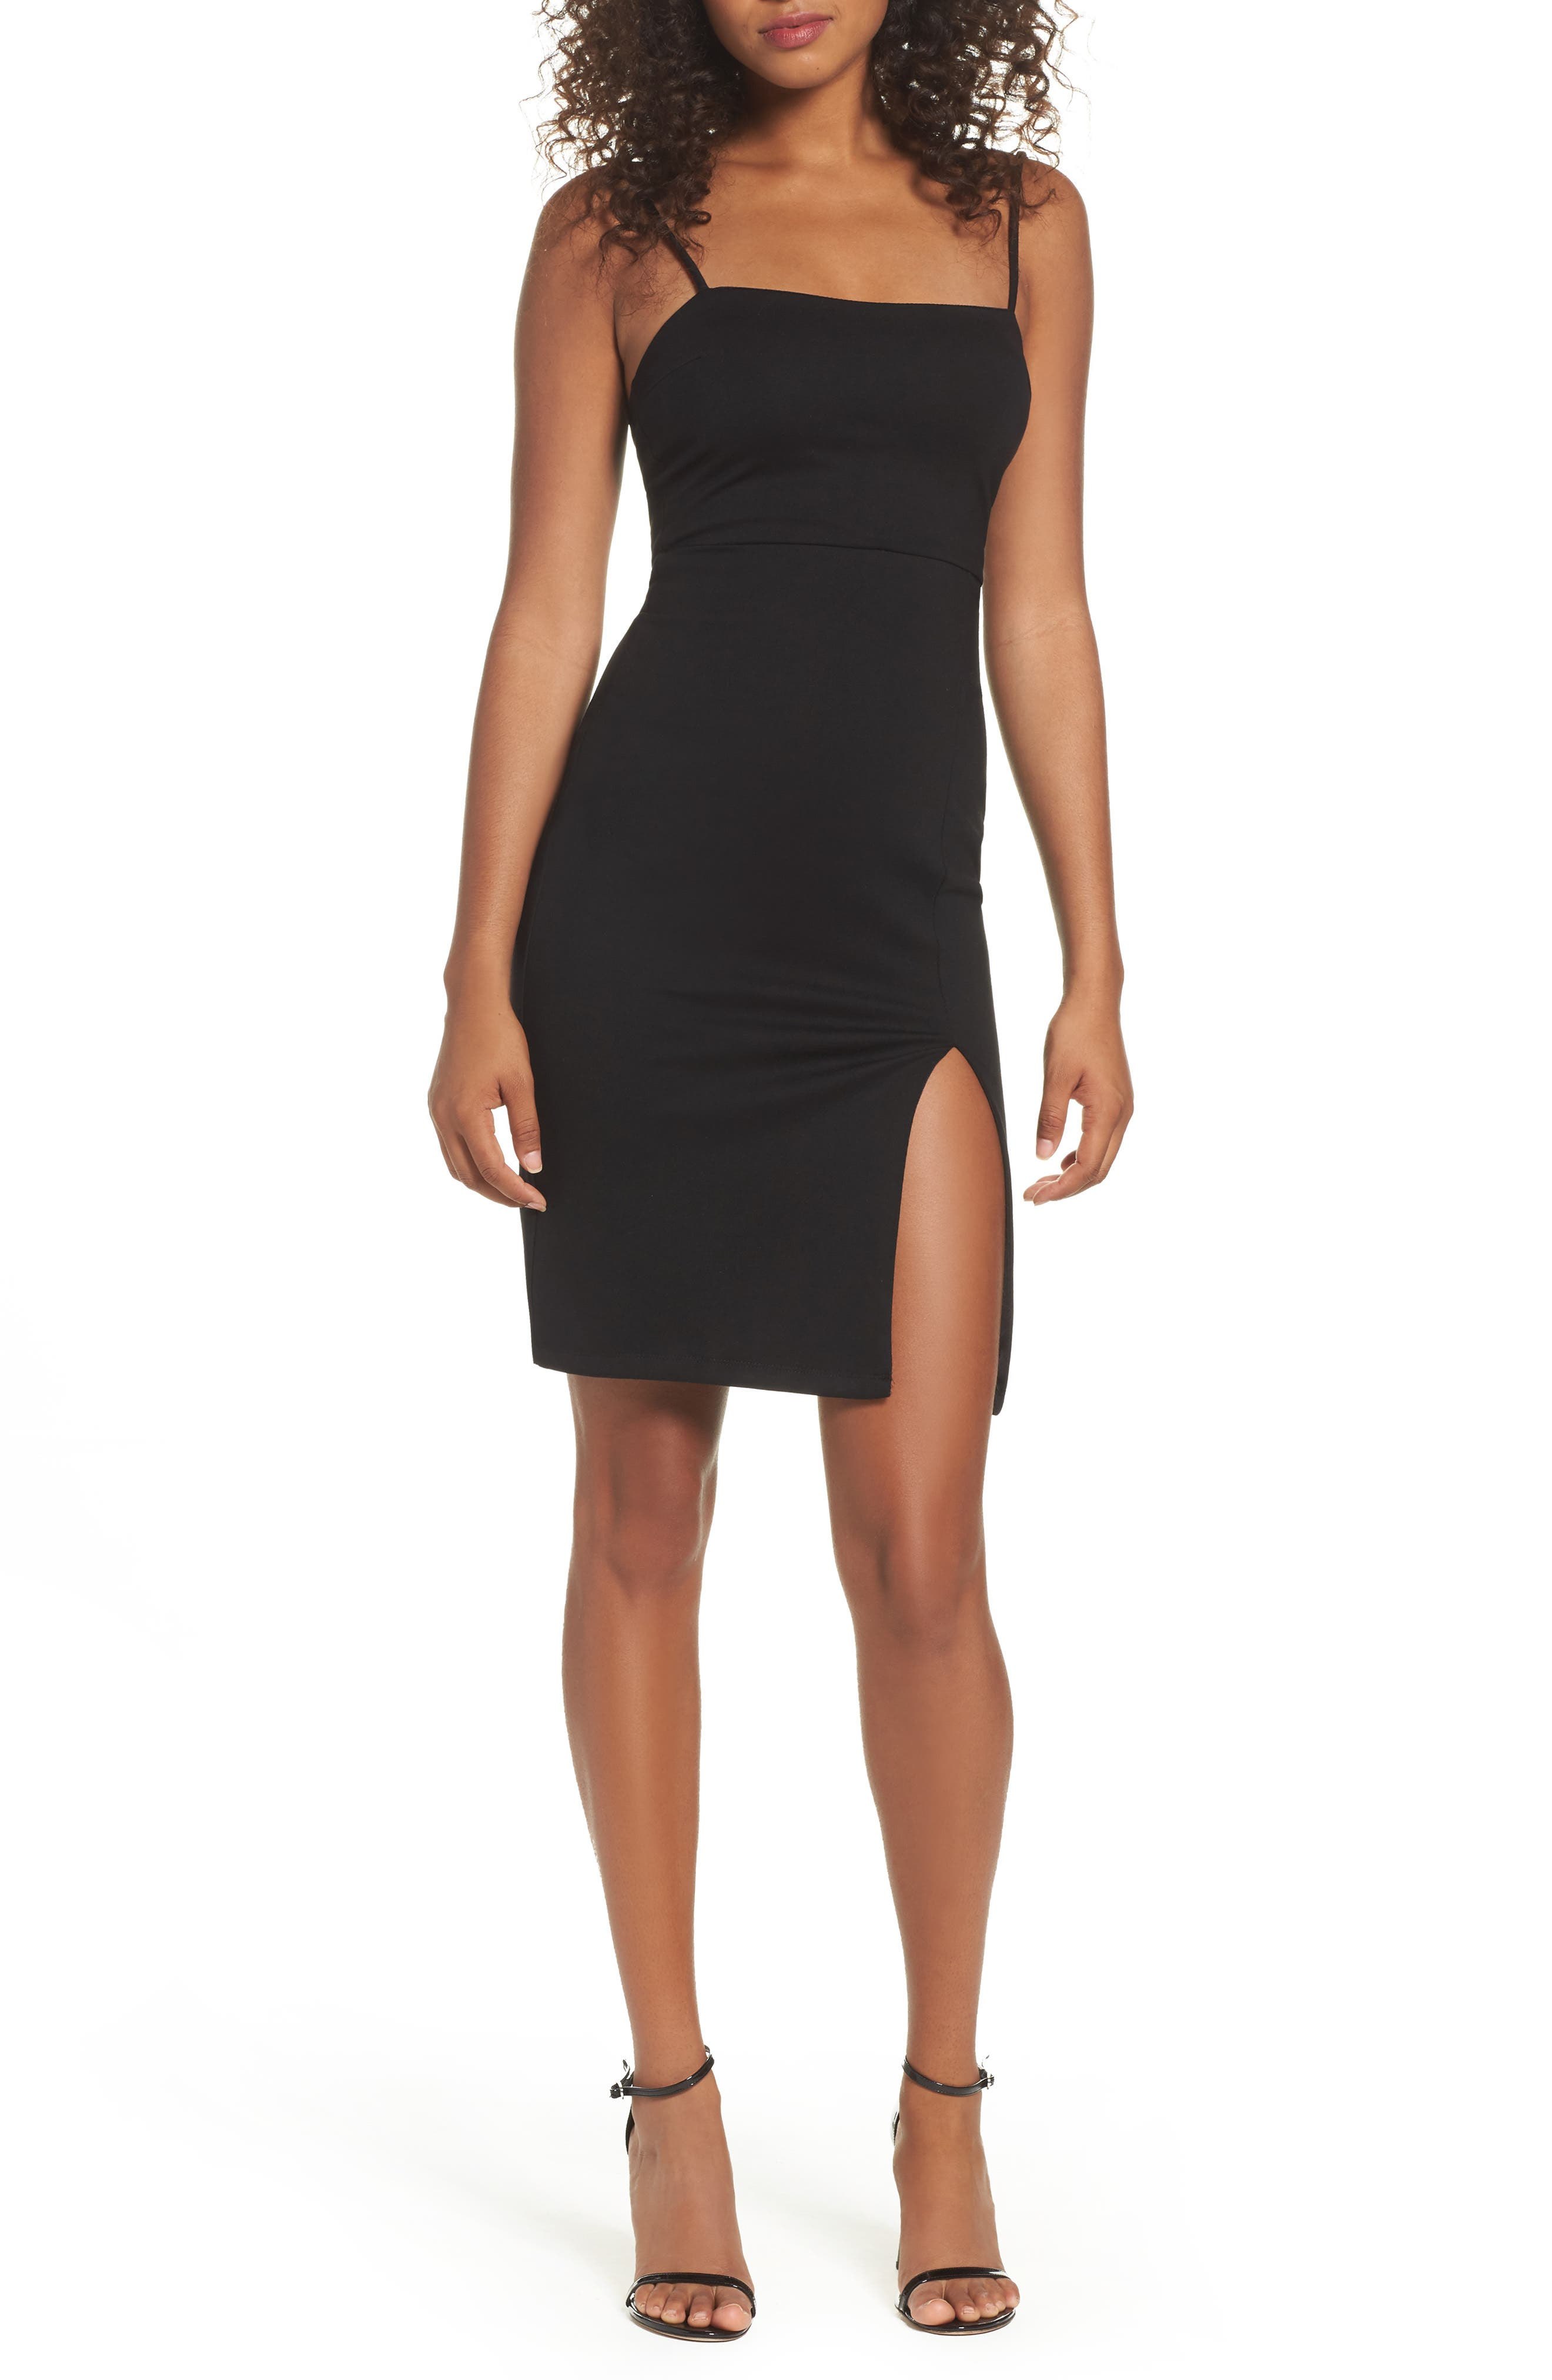 Lulus Don't Let Me Down Body-Con Dress